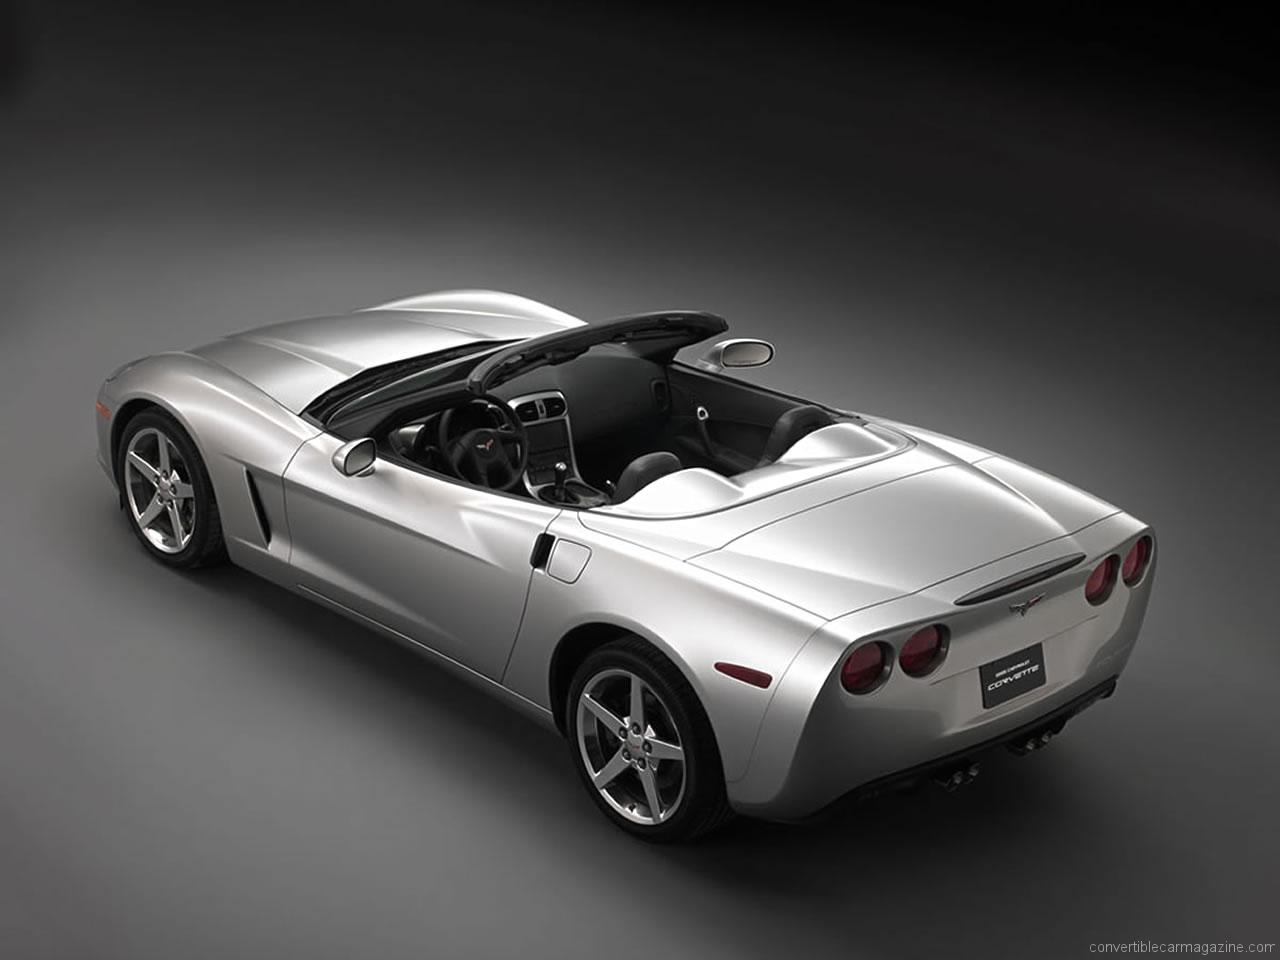 Chevrolet Corvette C6 Convertible Buying Guide